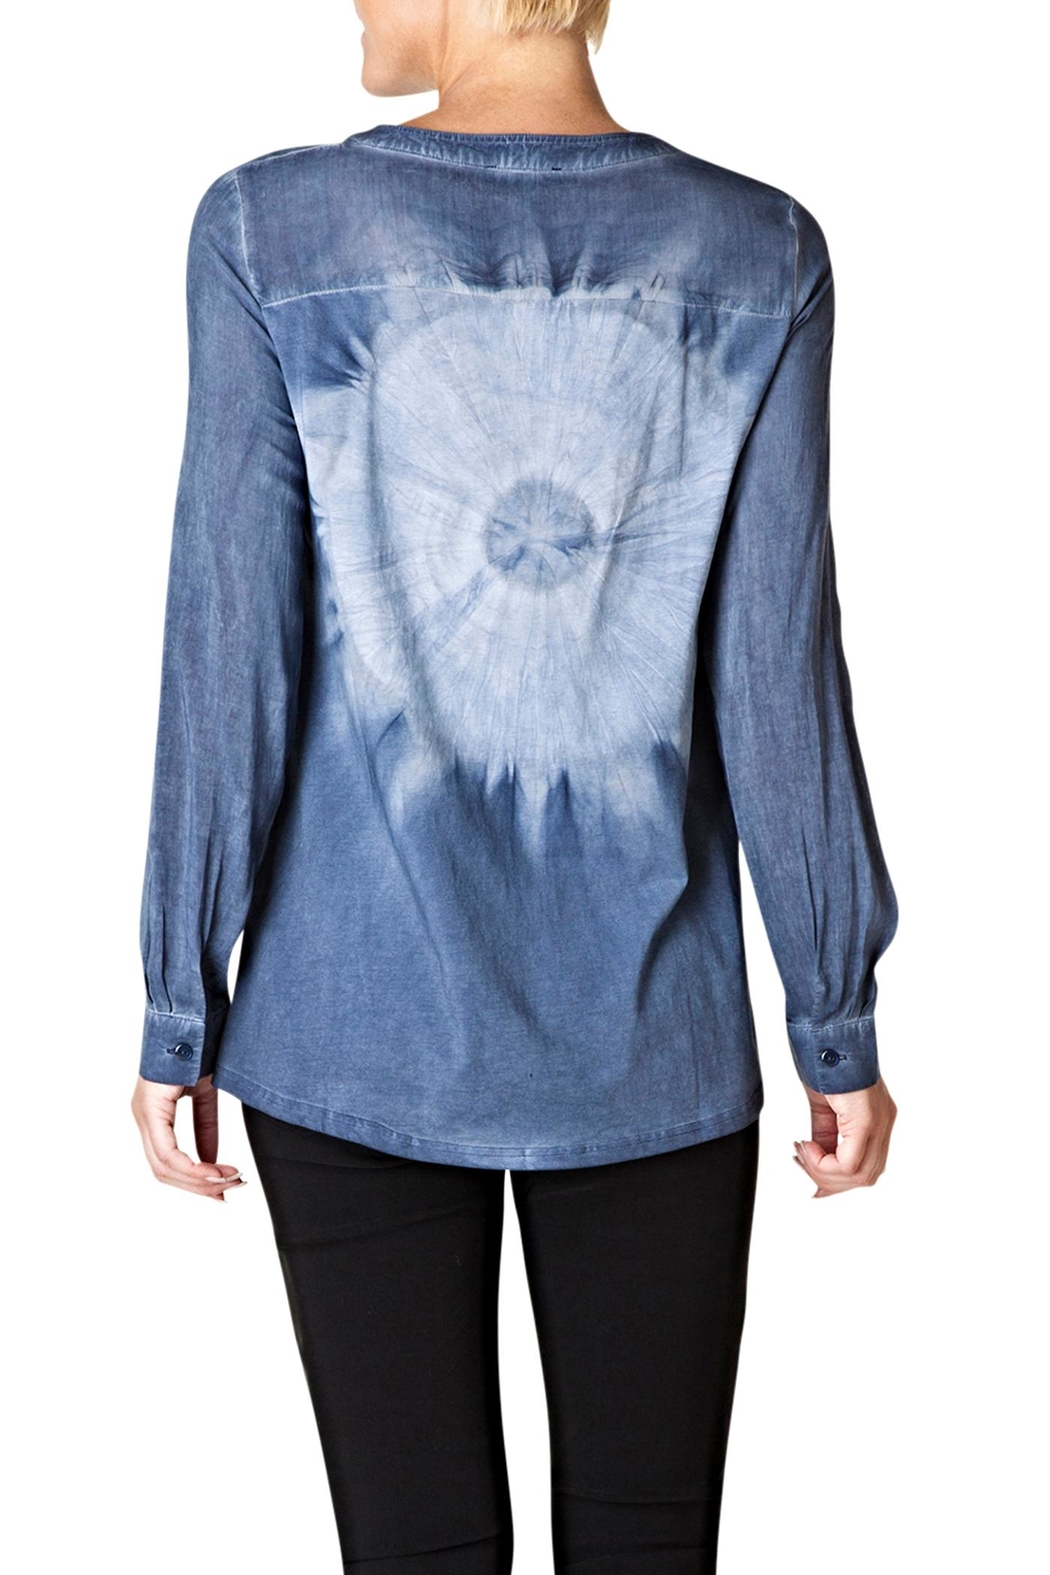 Yest Button Tiedye Blouse - Front Full Image